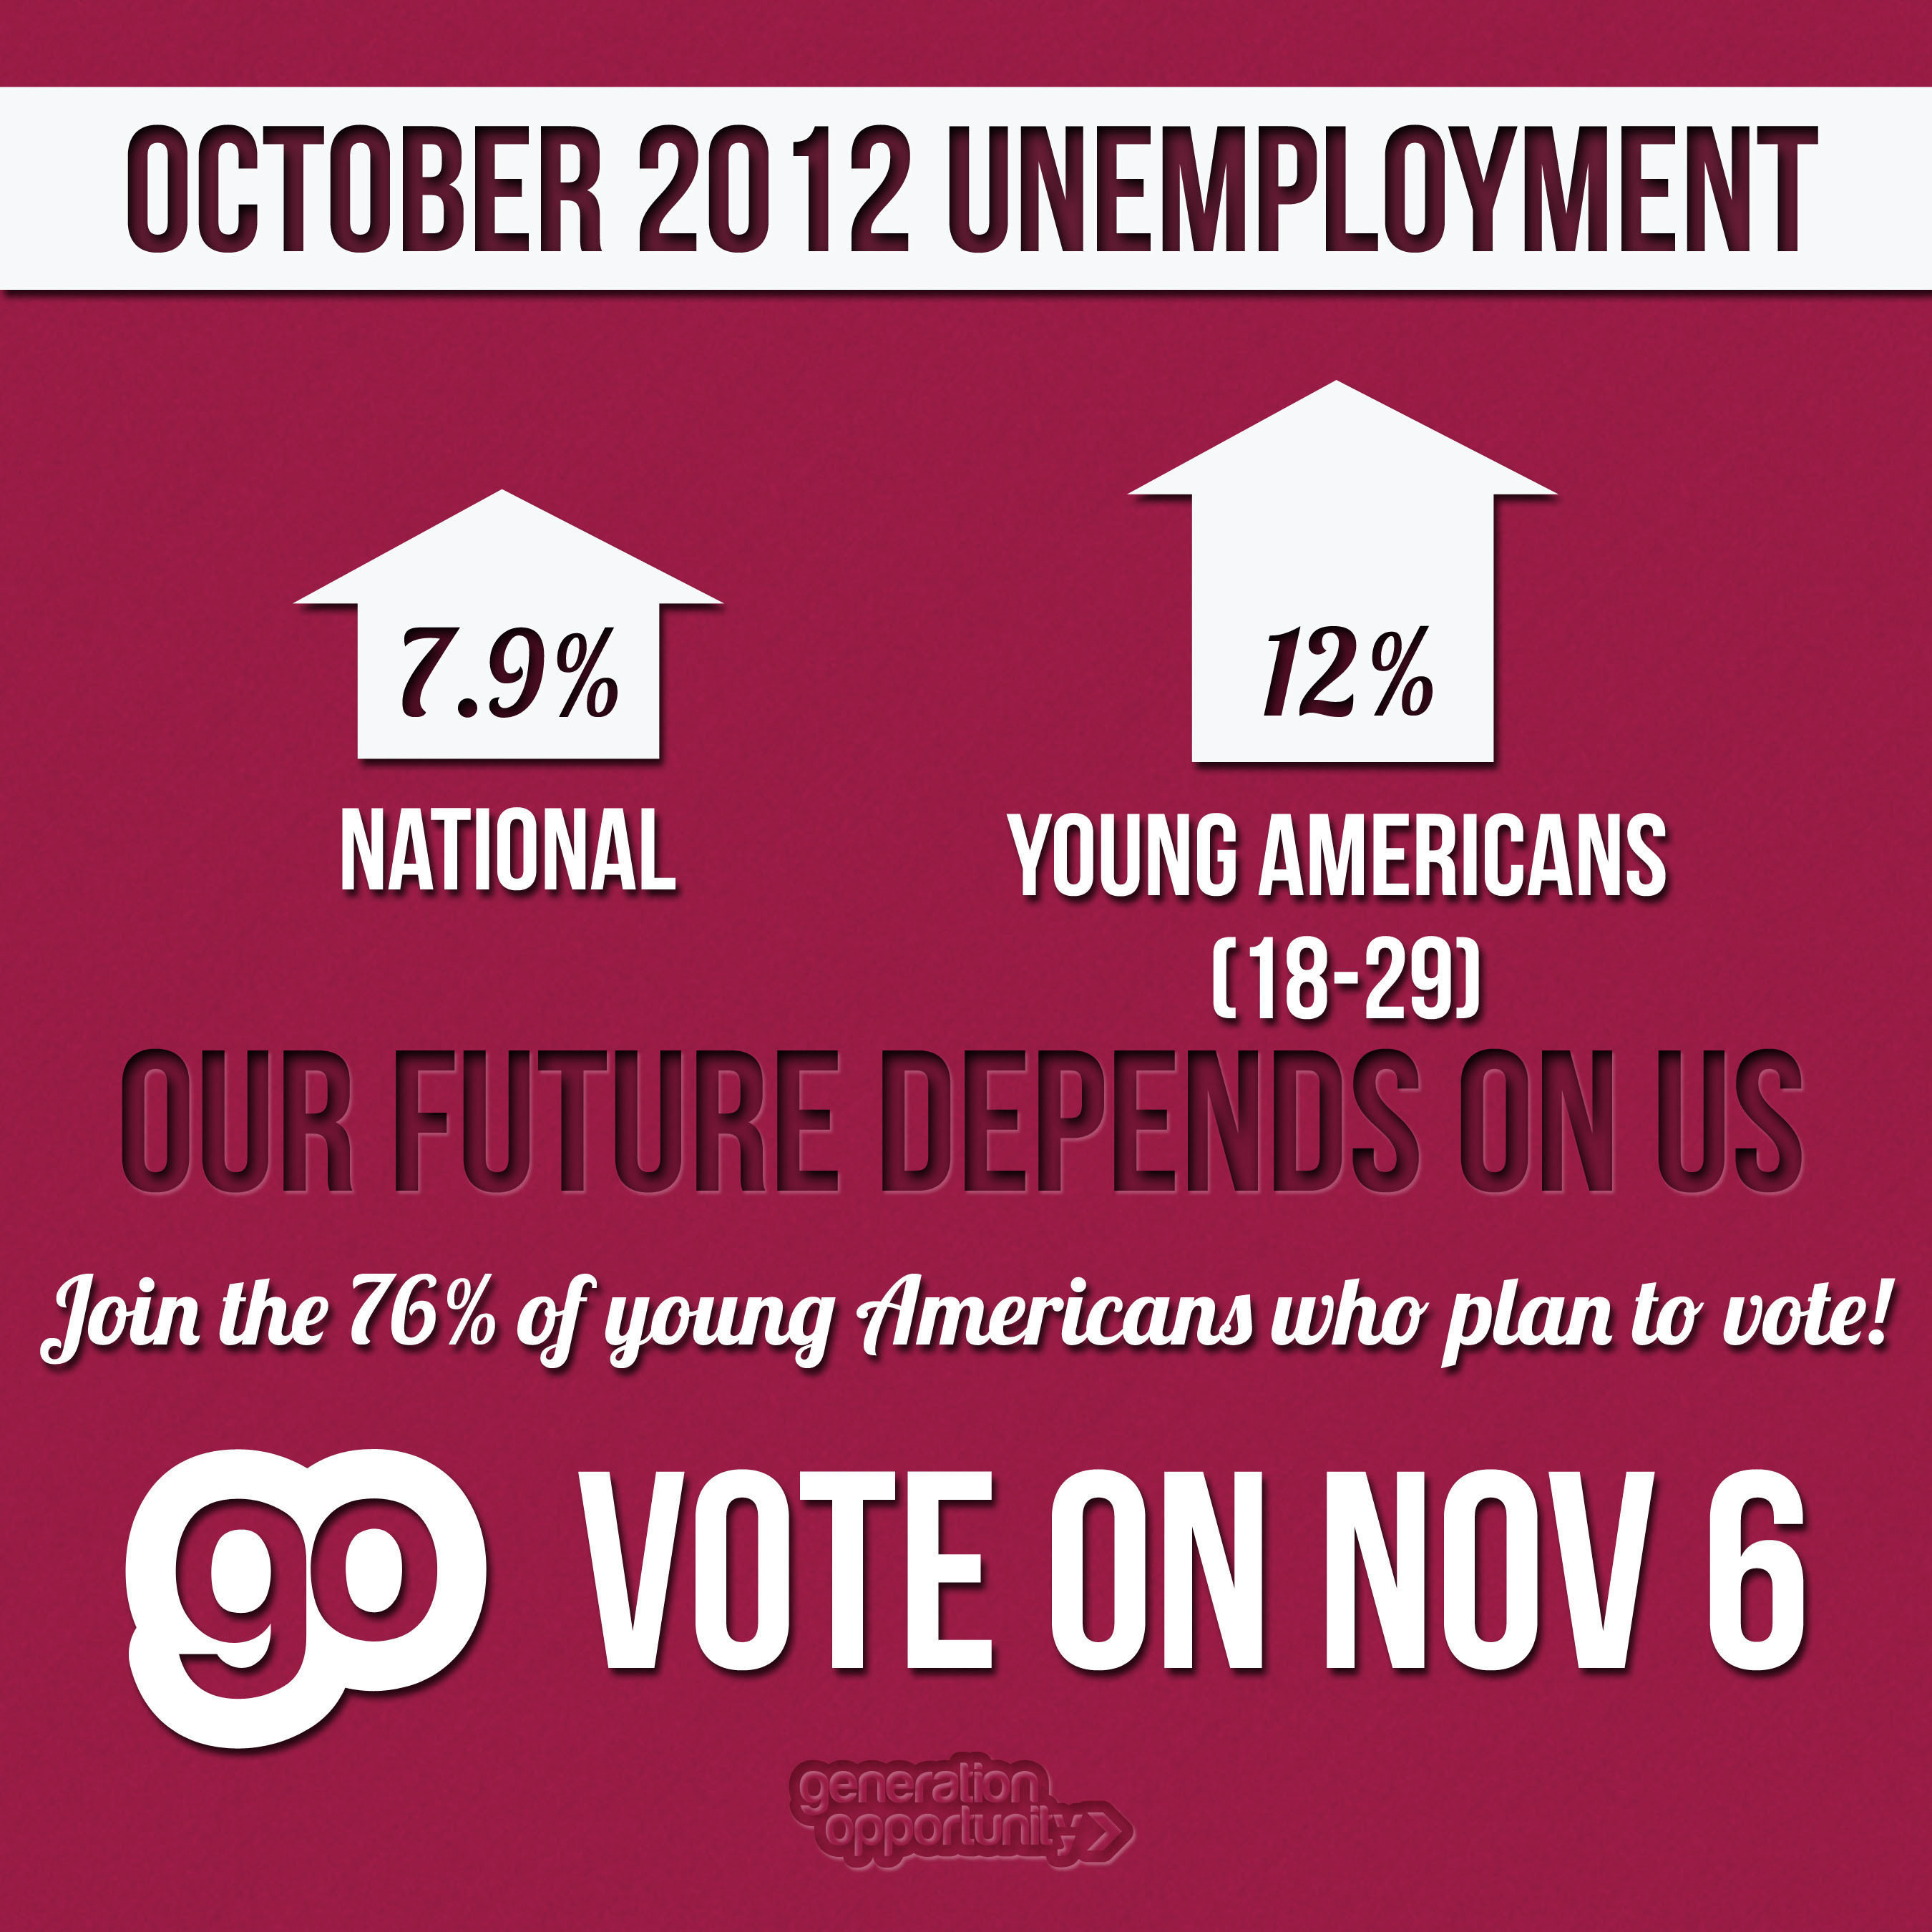 12 Percent of Young Americans Unemployed as Presidential Election Nears.  (PRNewsFoto/Generation Opportunity)